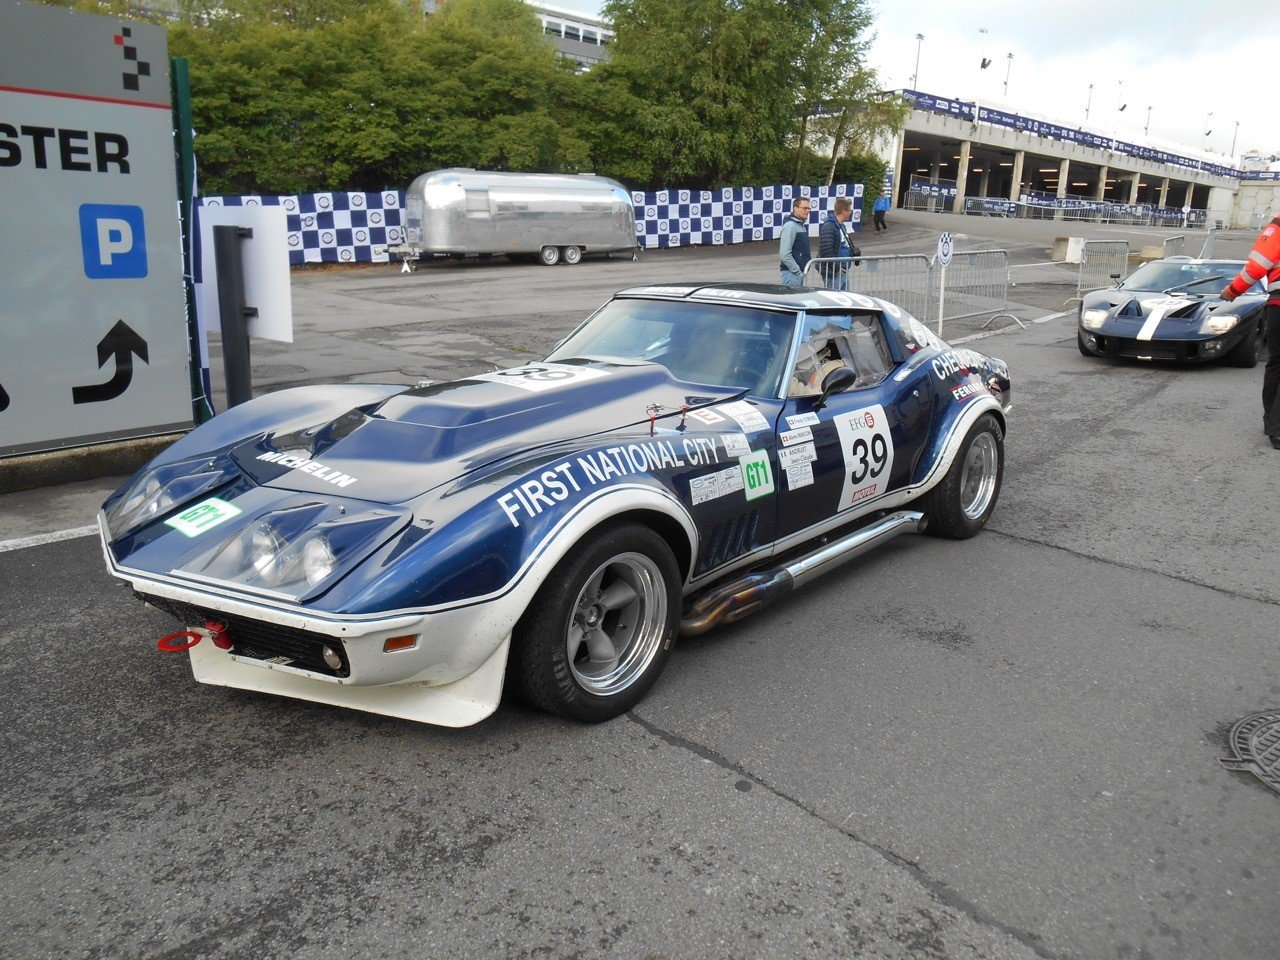 1969 CHEVROLET CORVETTE  STINGRAY GR. IV, FIA, EX ANDRUET For Sale by Auction (picture 3 of 3)